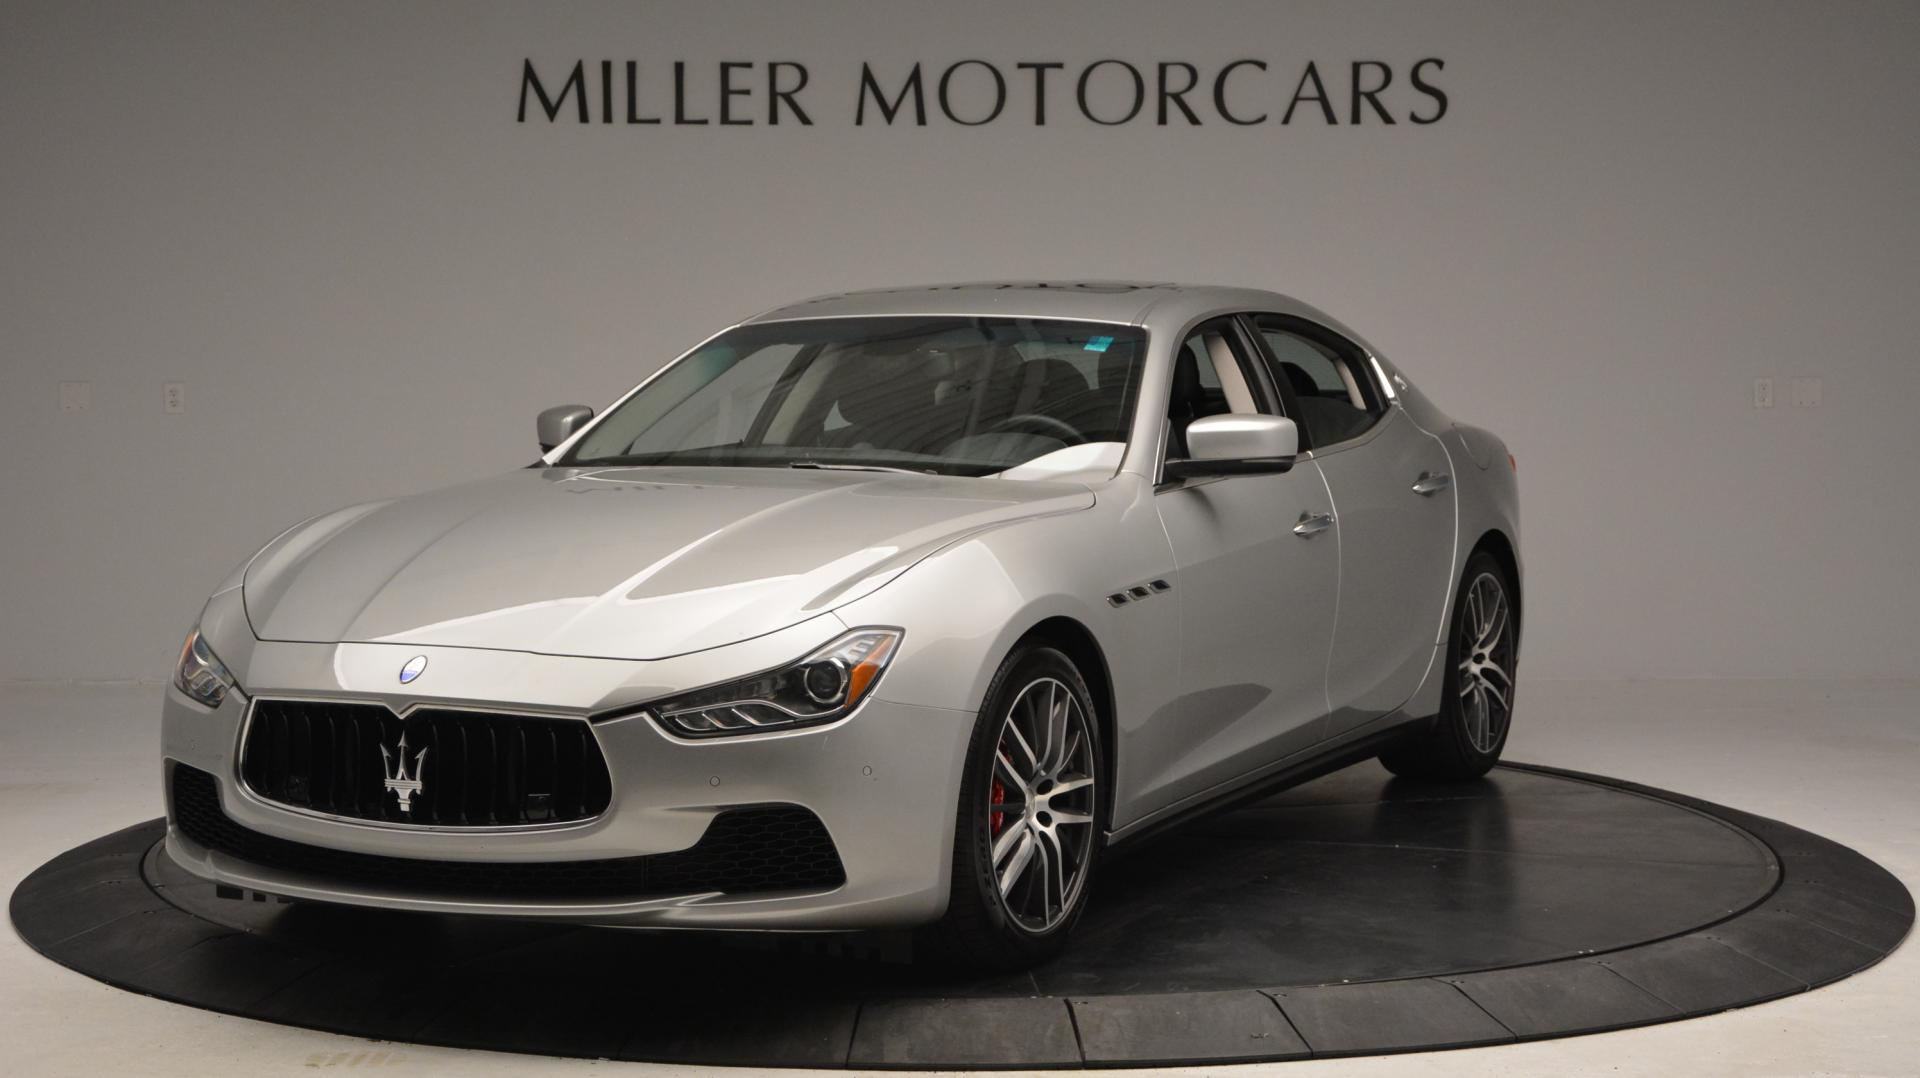 New 2016 Maserati Ghibli S Q4 For Sale In Westport, CT 63_main